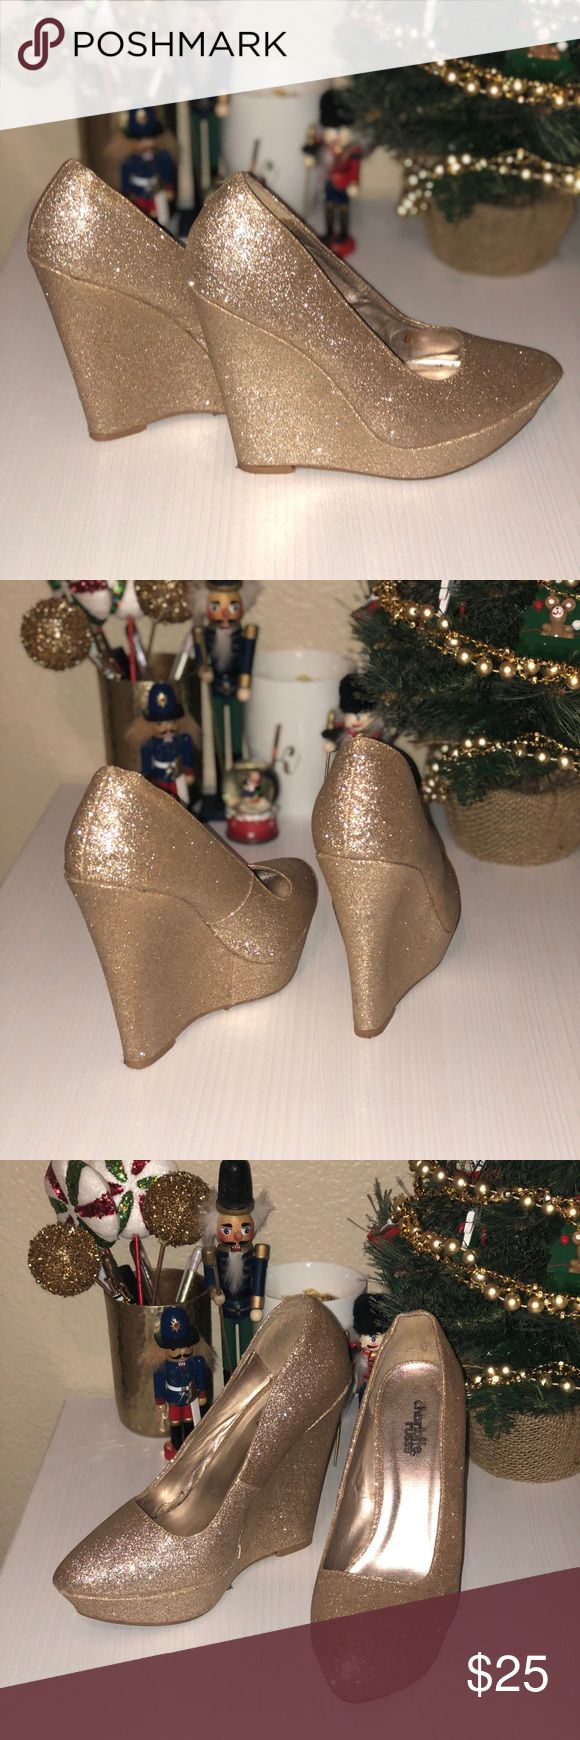 """Gold Wedge Heels Gold sparkle wedges. Perfect for holiday parties and everyday glam! I love these so much but never get to wear them.  Heel is 5"""" high, and has gold glitter all over. Charlotte Russe Shoes Heels"""